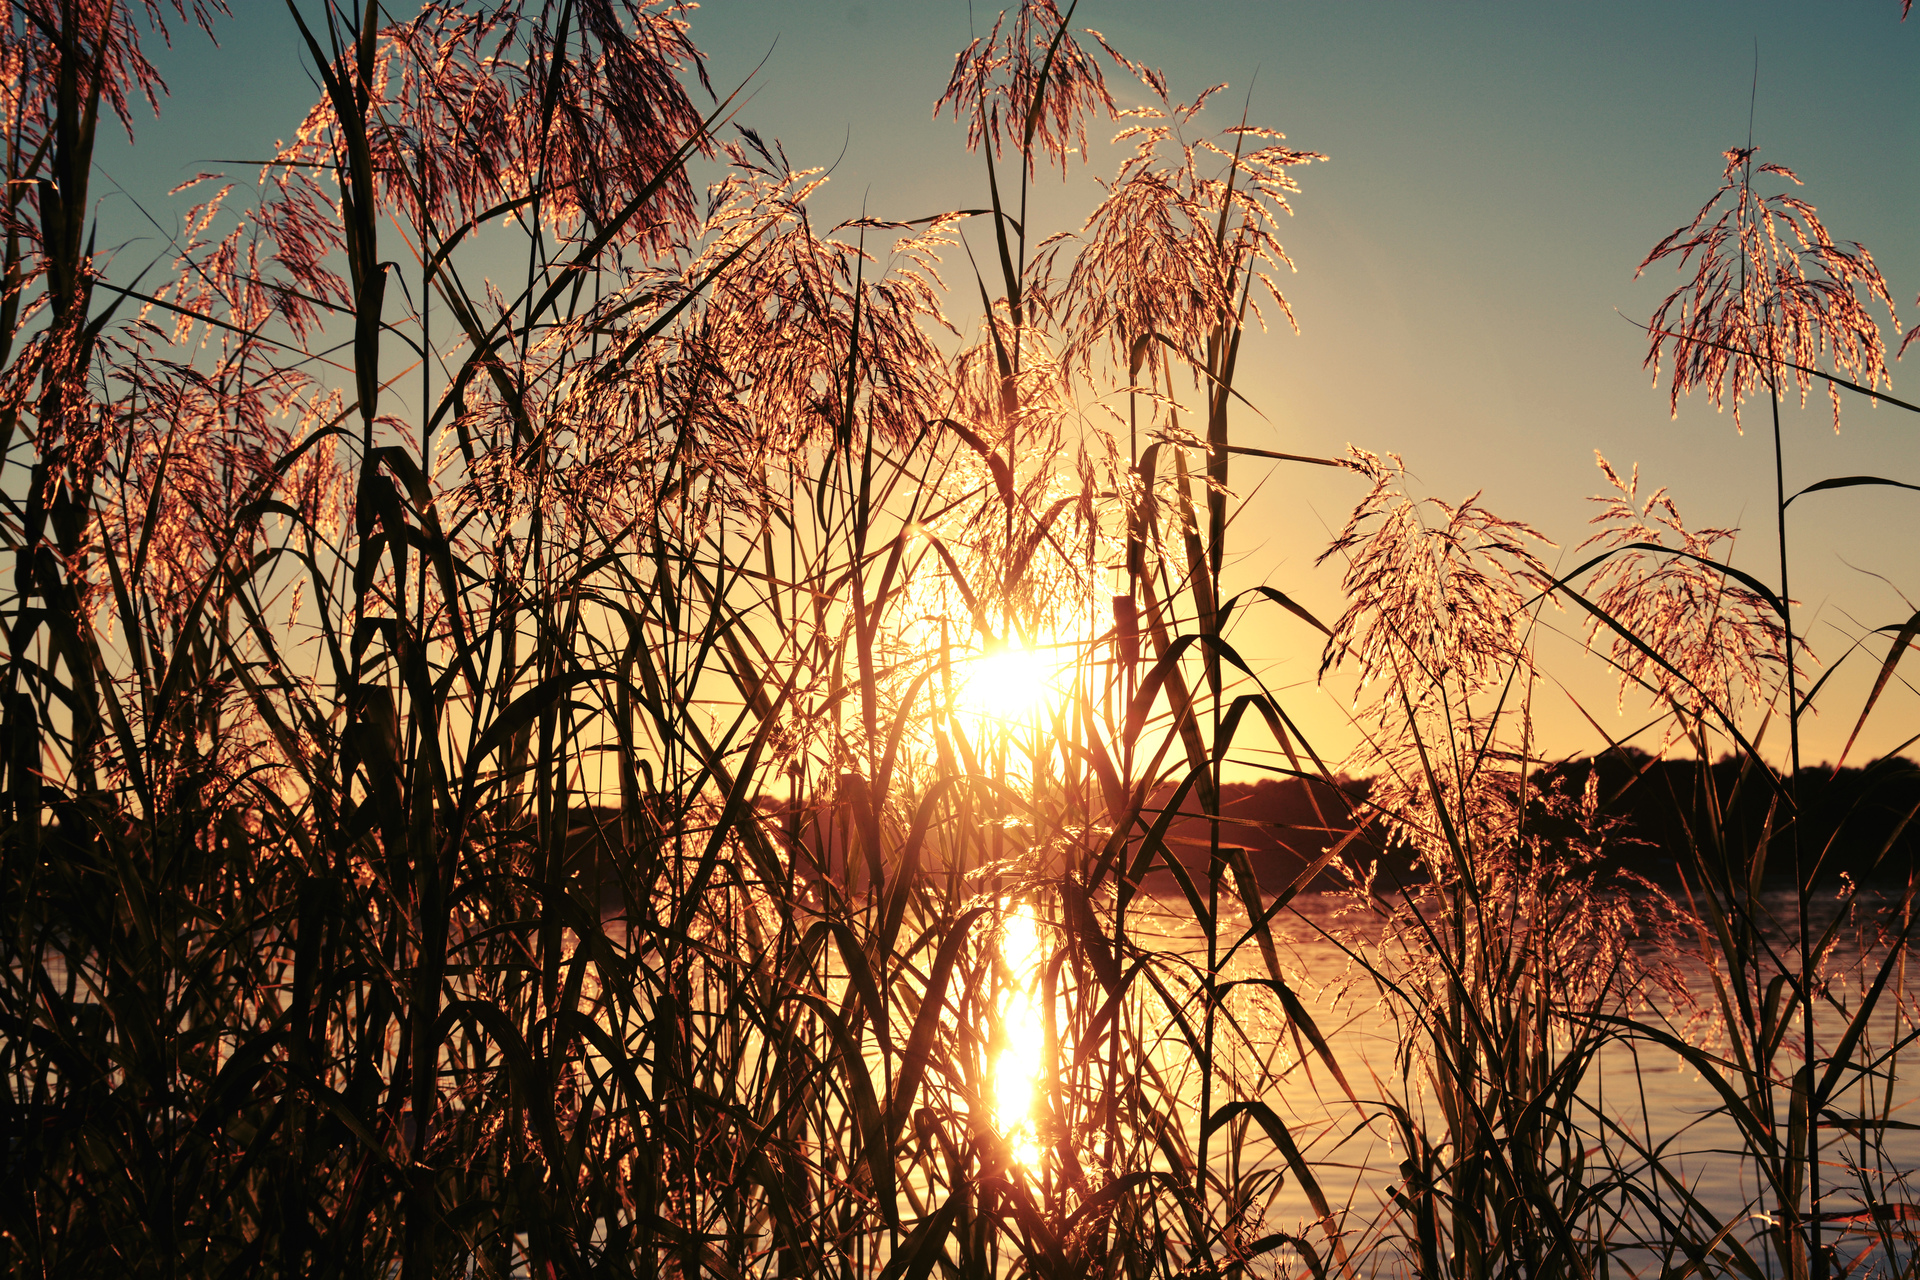 Captivating Illuminating Sunrays!  It is a dazzle with splendor and a soul-swelling experience to capture brilliant sunrays! Between the gaps of the tall grasses, lances of molten gold beams splash through the atmosphere and onto the earth!